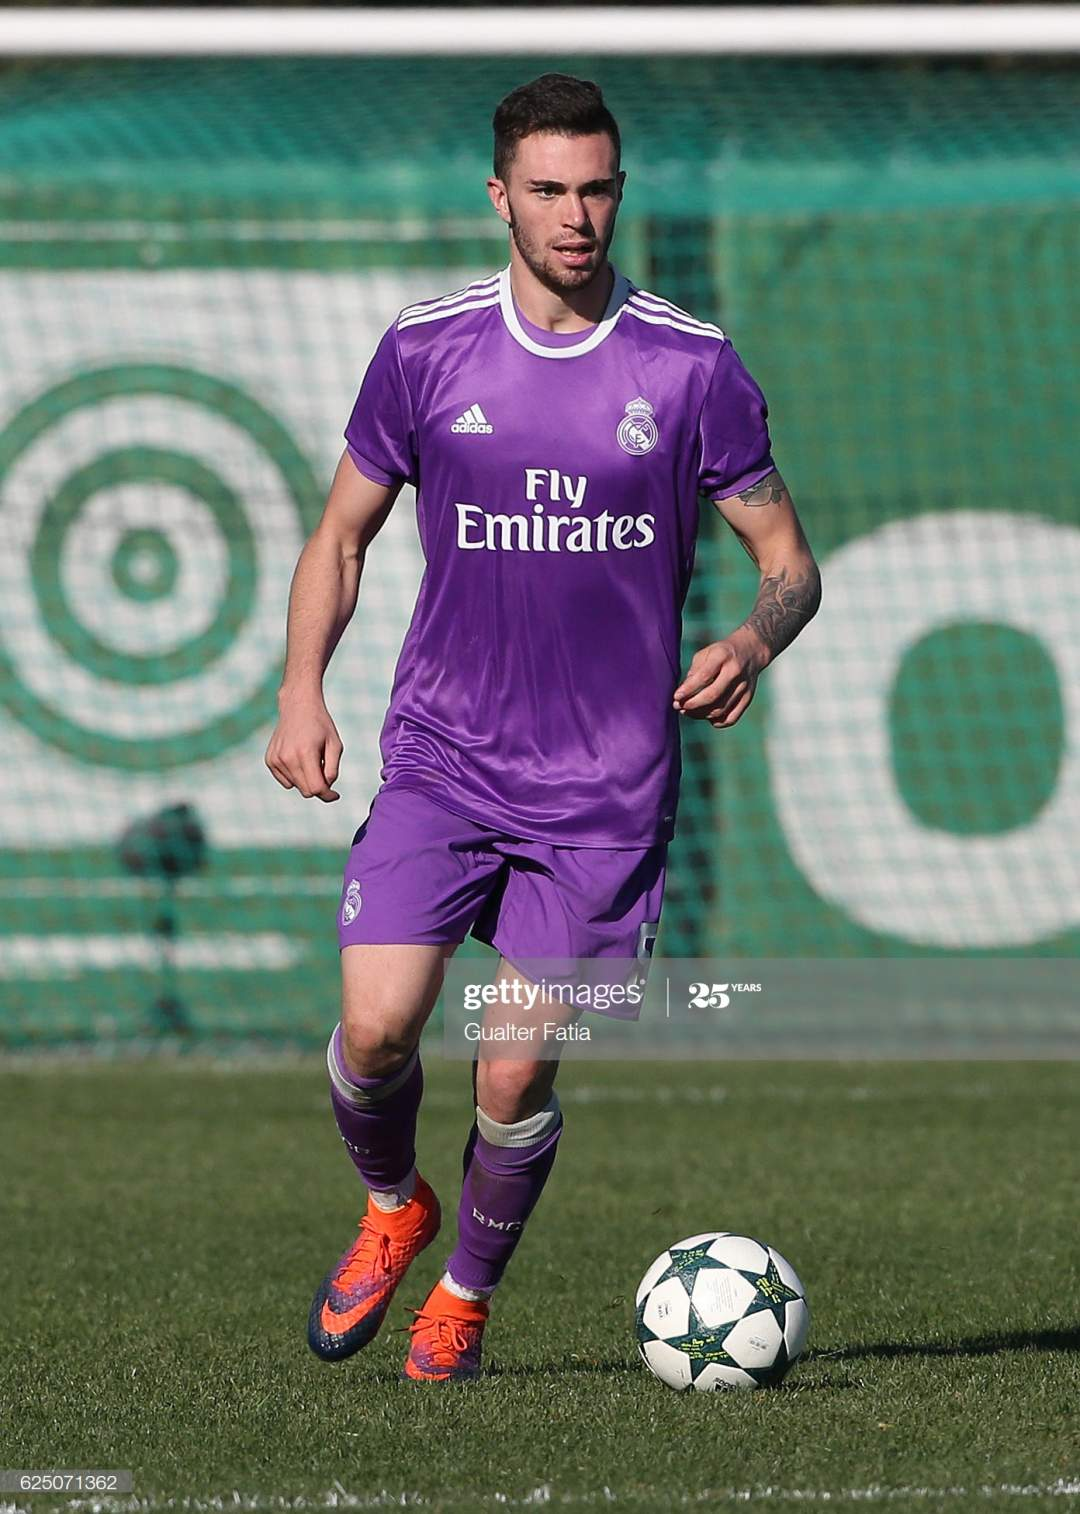 Real Madrids Defender Manu Hernando In Action During The Uefa Youth Picture Id625071362?s=28